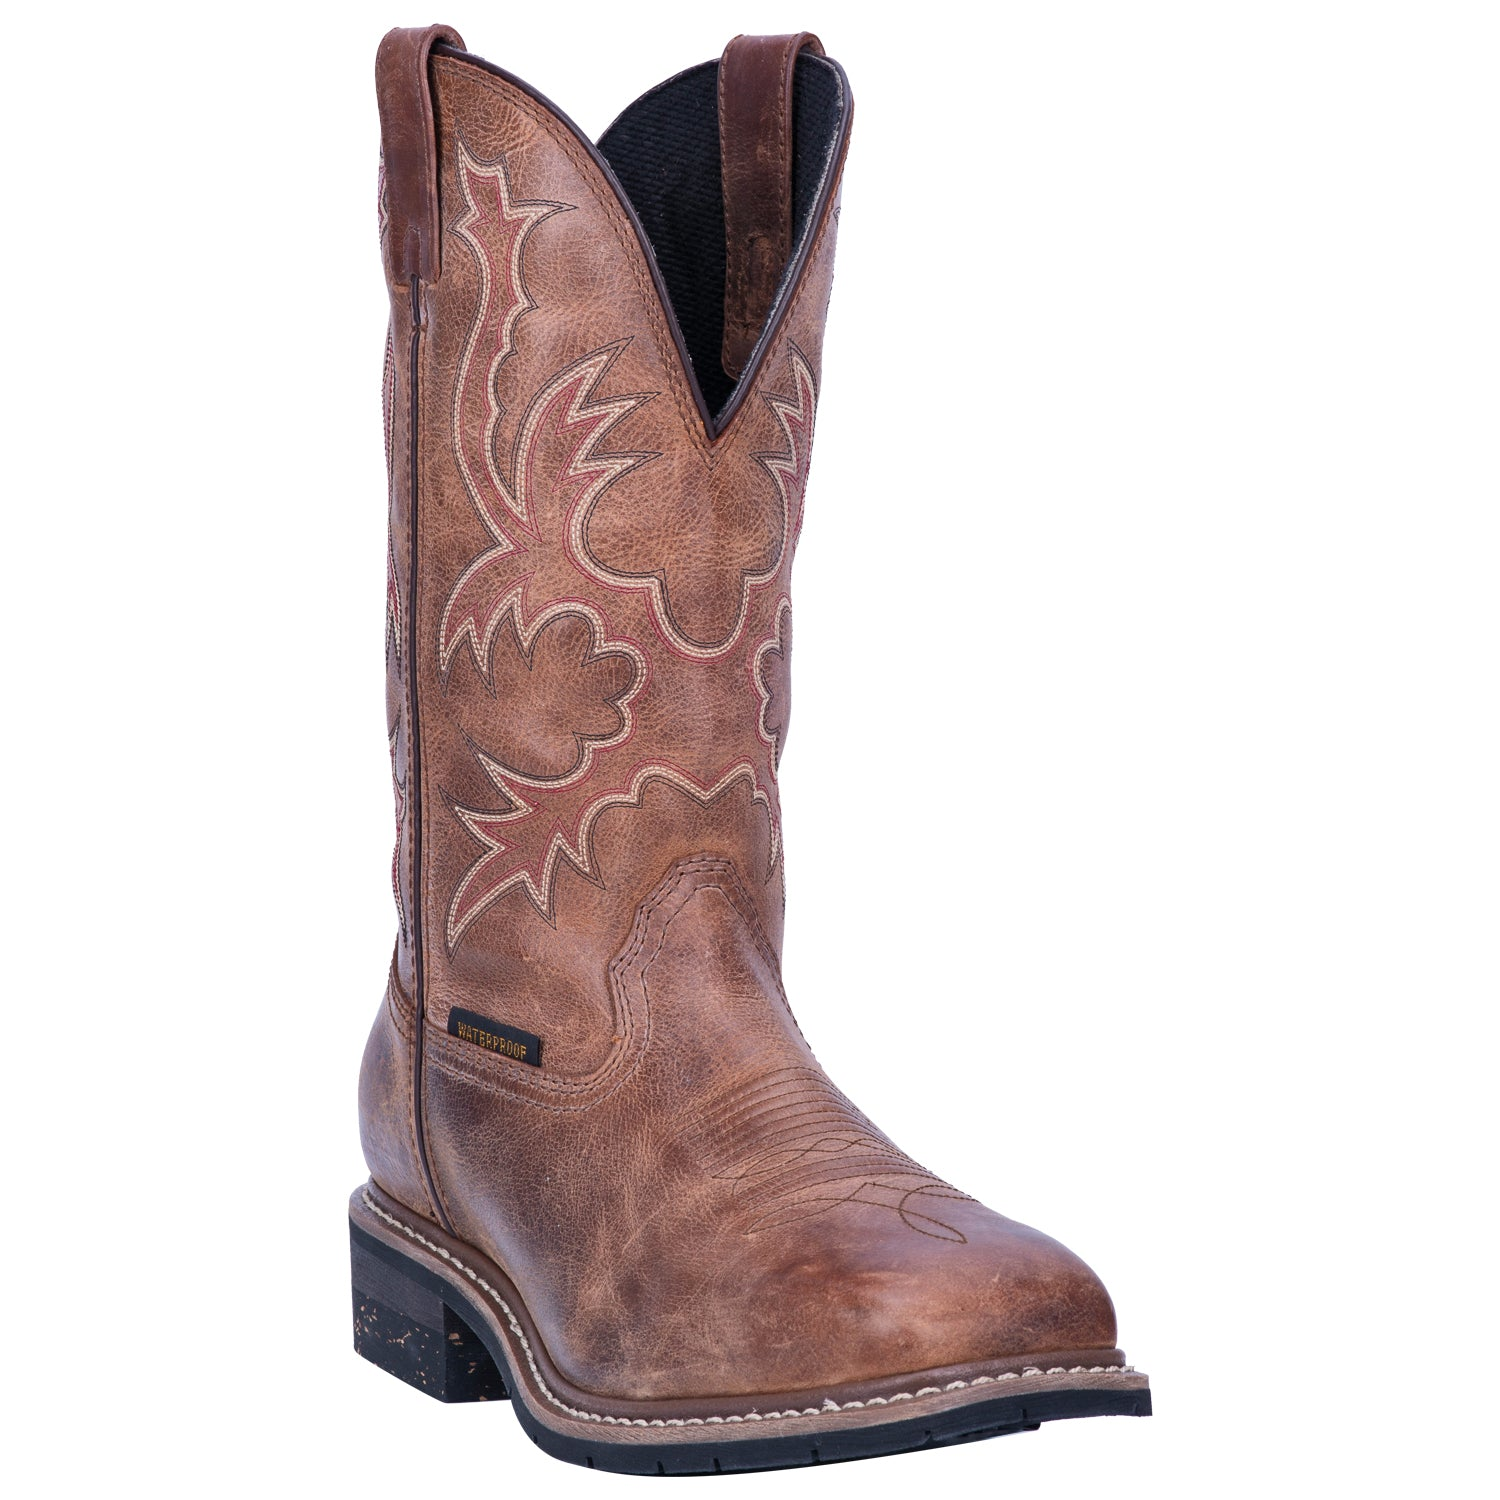 NOGALES WATERPROOF LEATHER BOOT 4253978755114